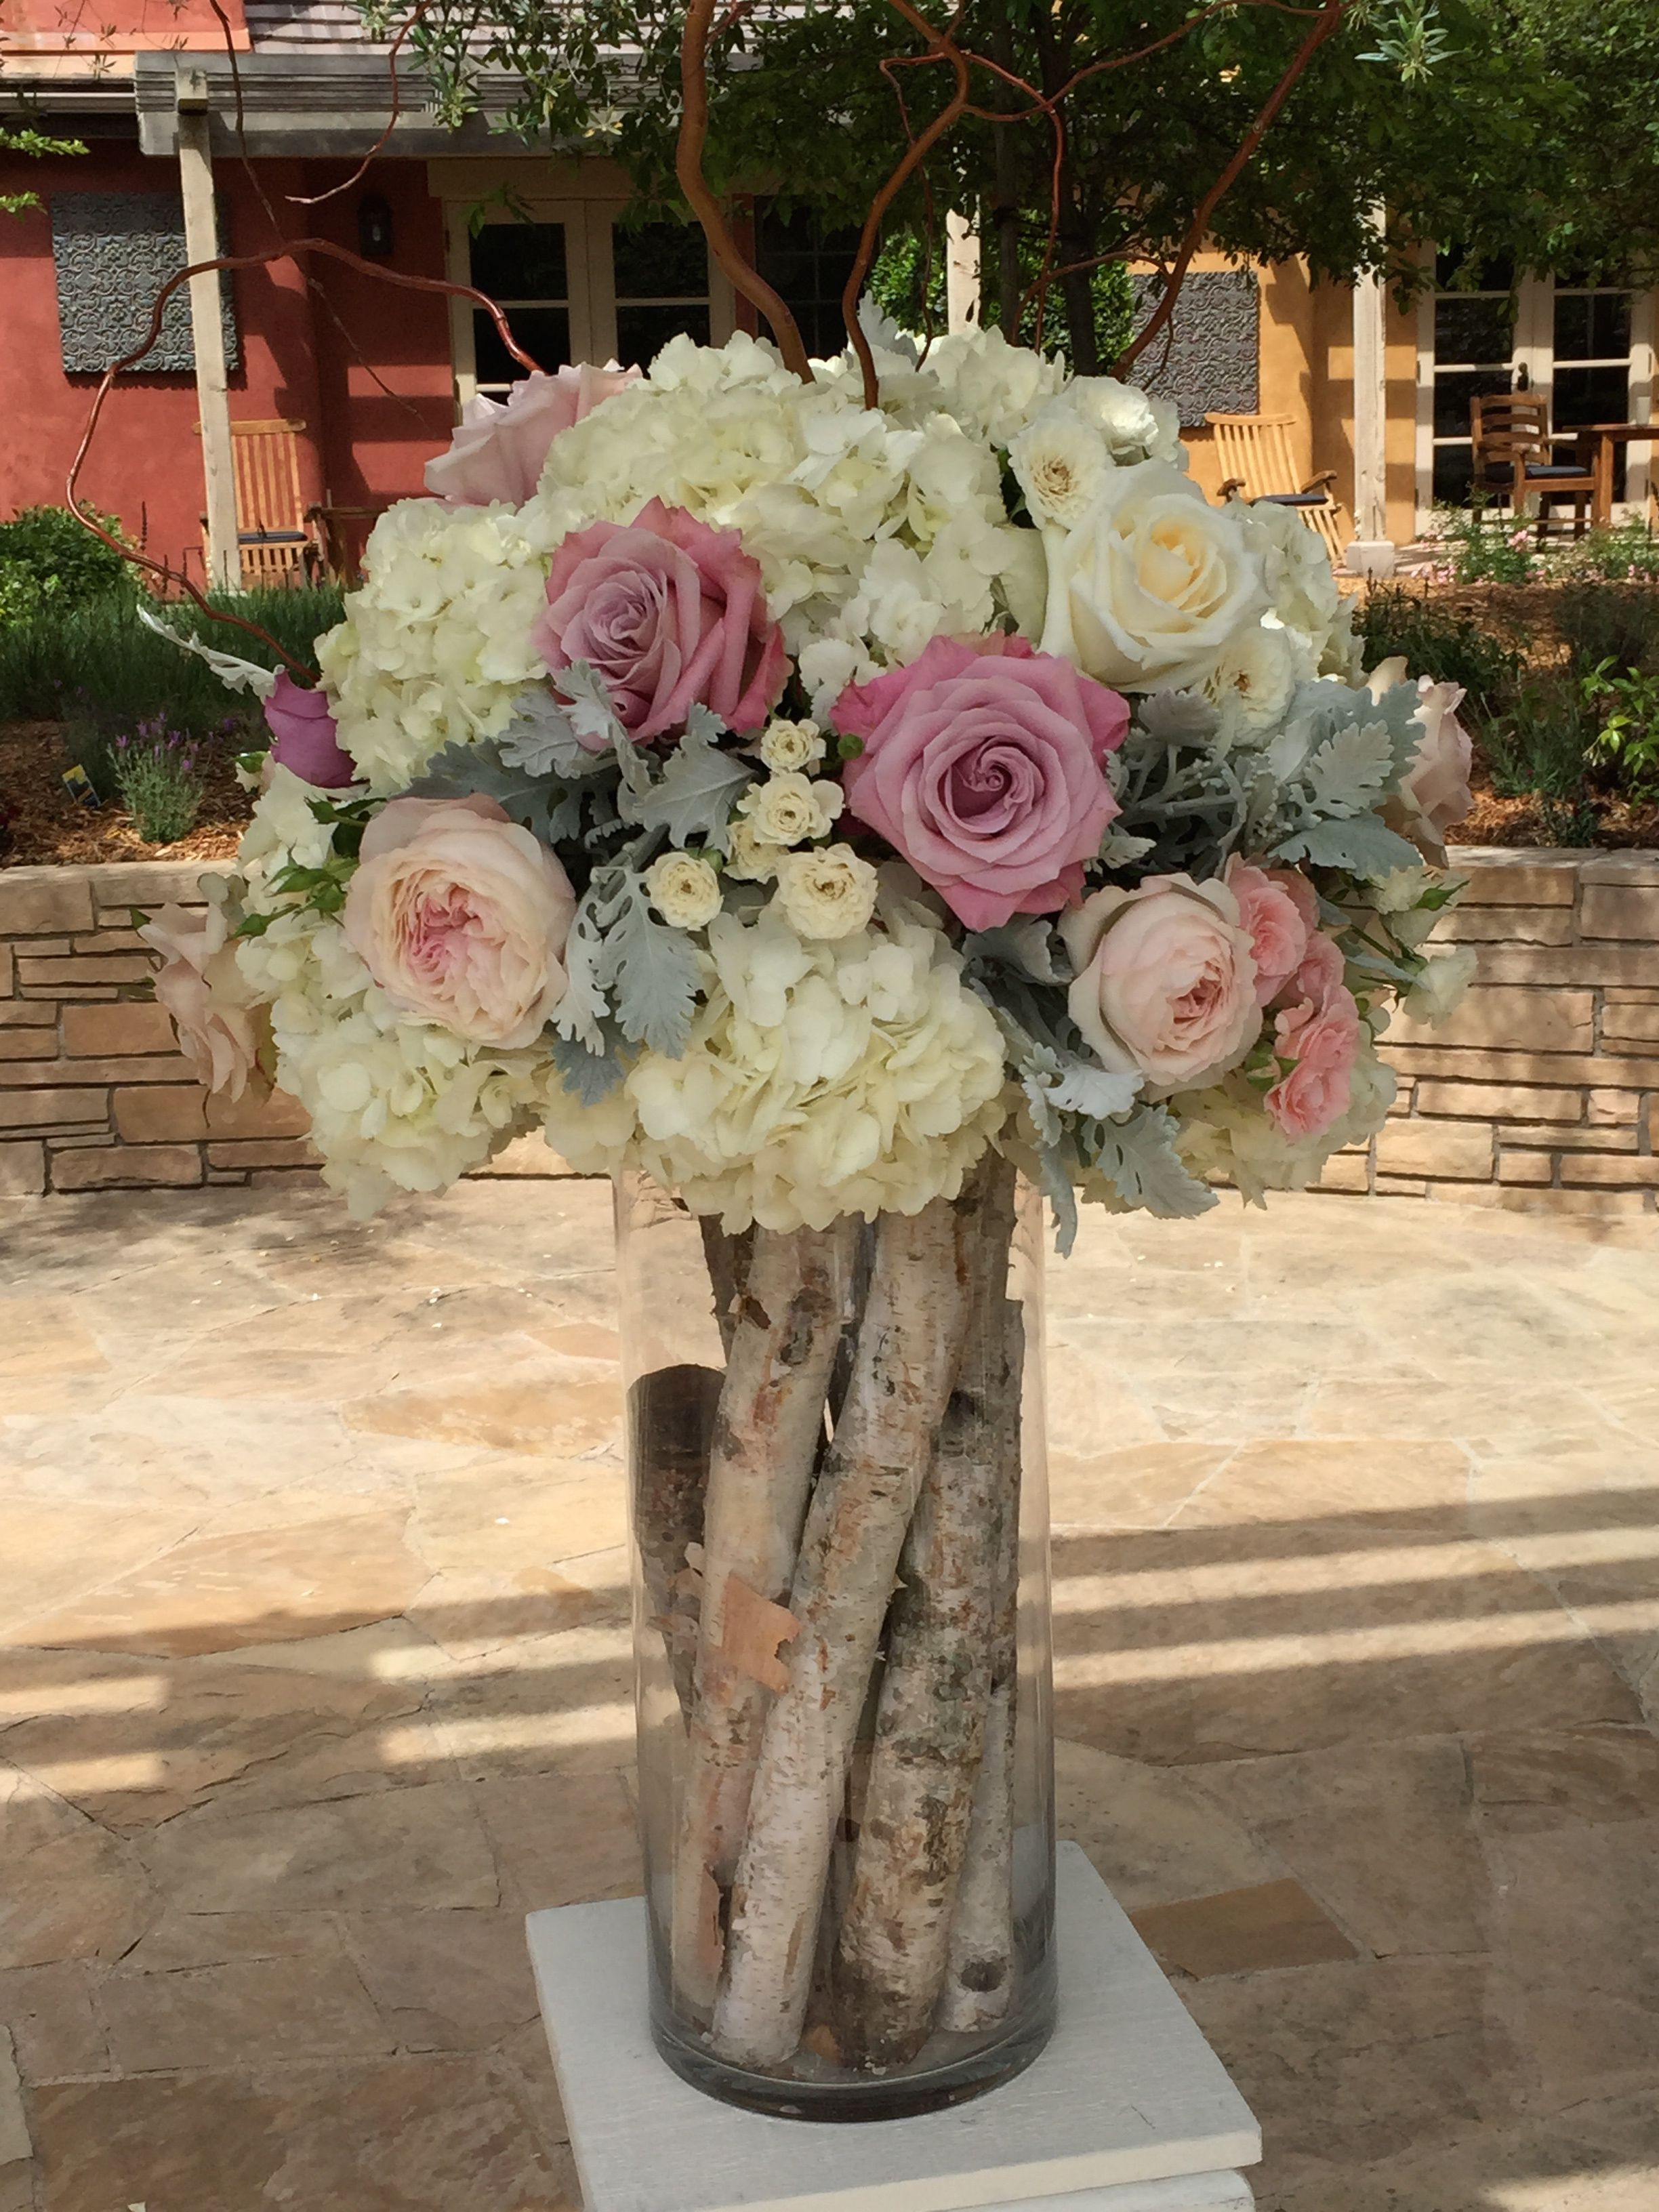 Ceremony flowers with open roses and hydrangea. Love the birch poles ...